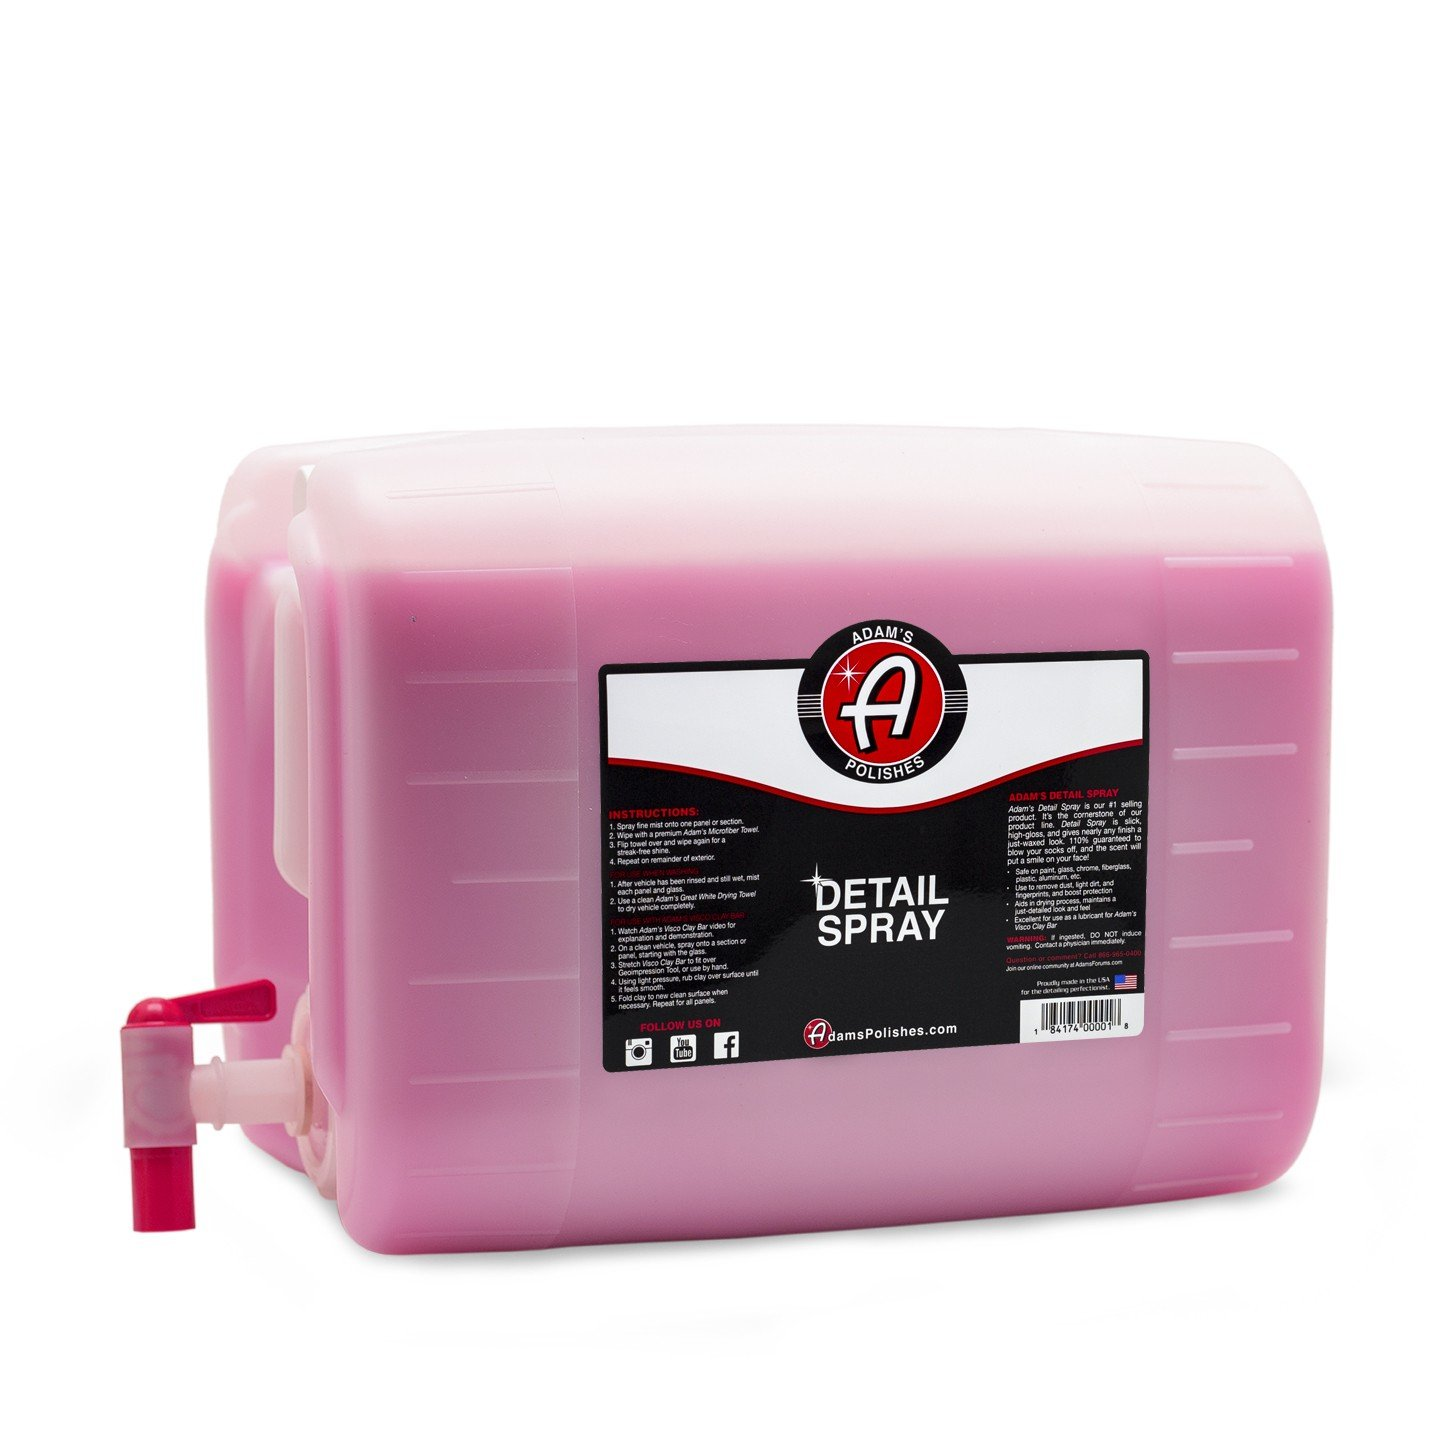 Adam's Detail Spray - Enhance Gloss, Depth, Shine - Extends Protection with Wax Boosting Technology - Our Most Iconic Product, Guaranteed to Outshine The Competition (5 Gallon)